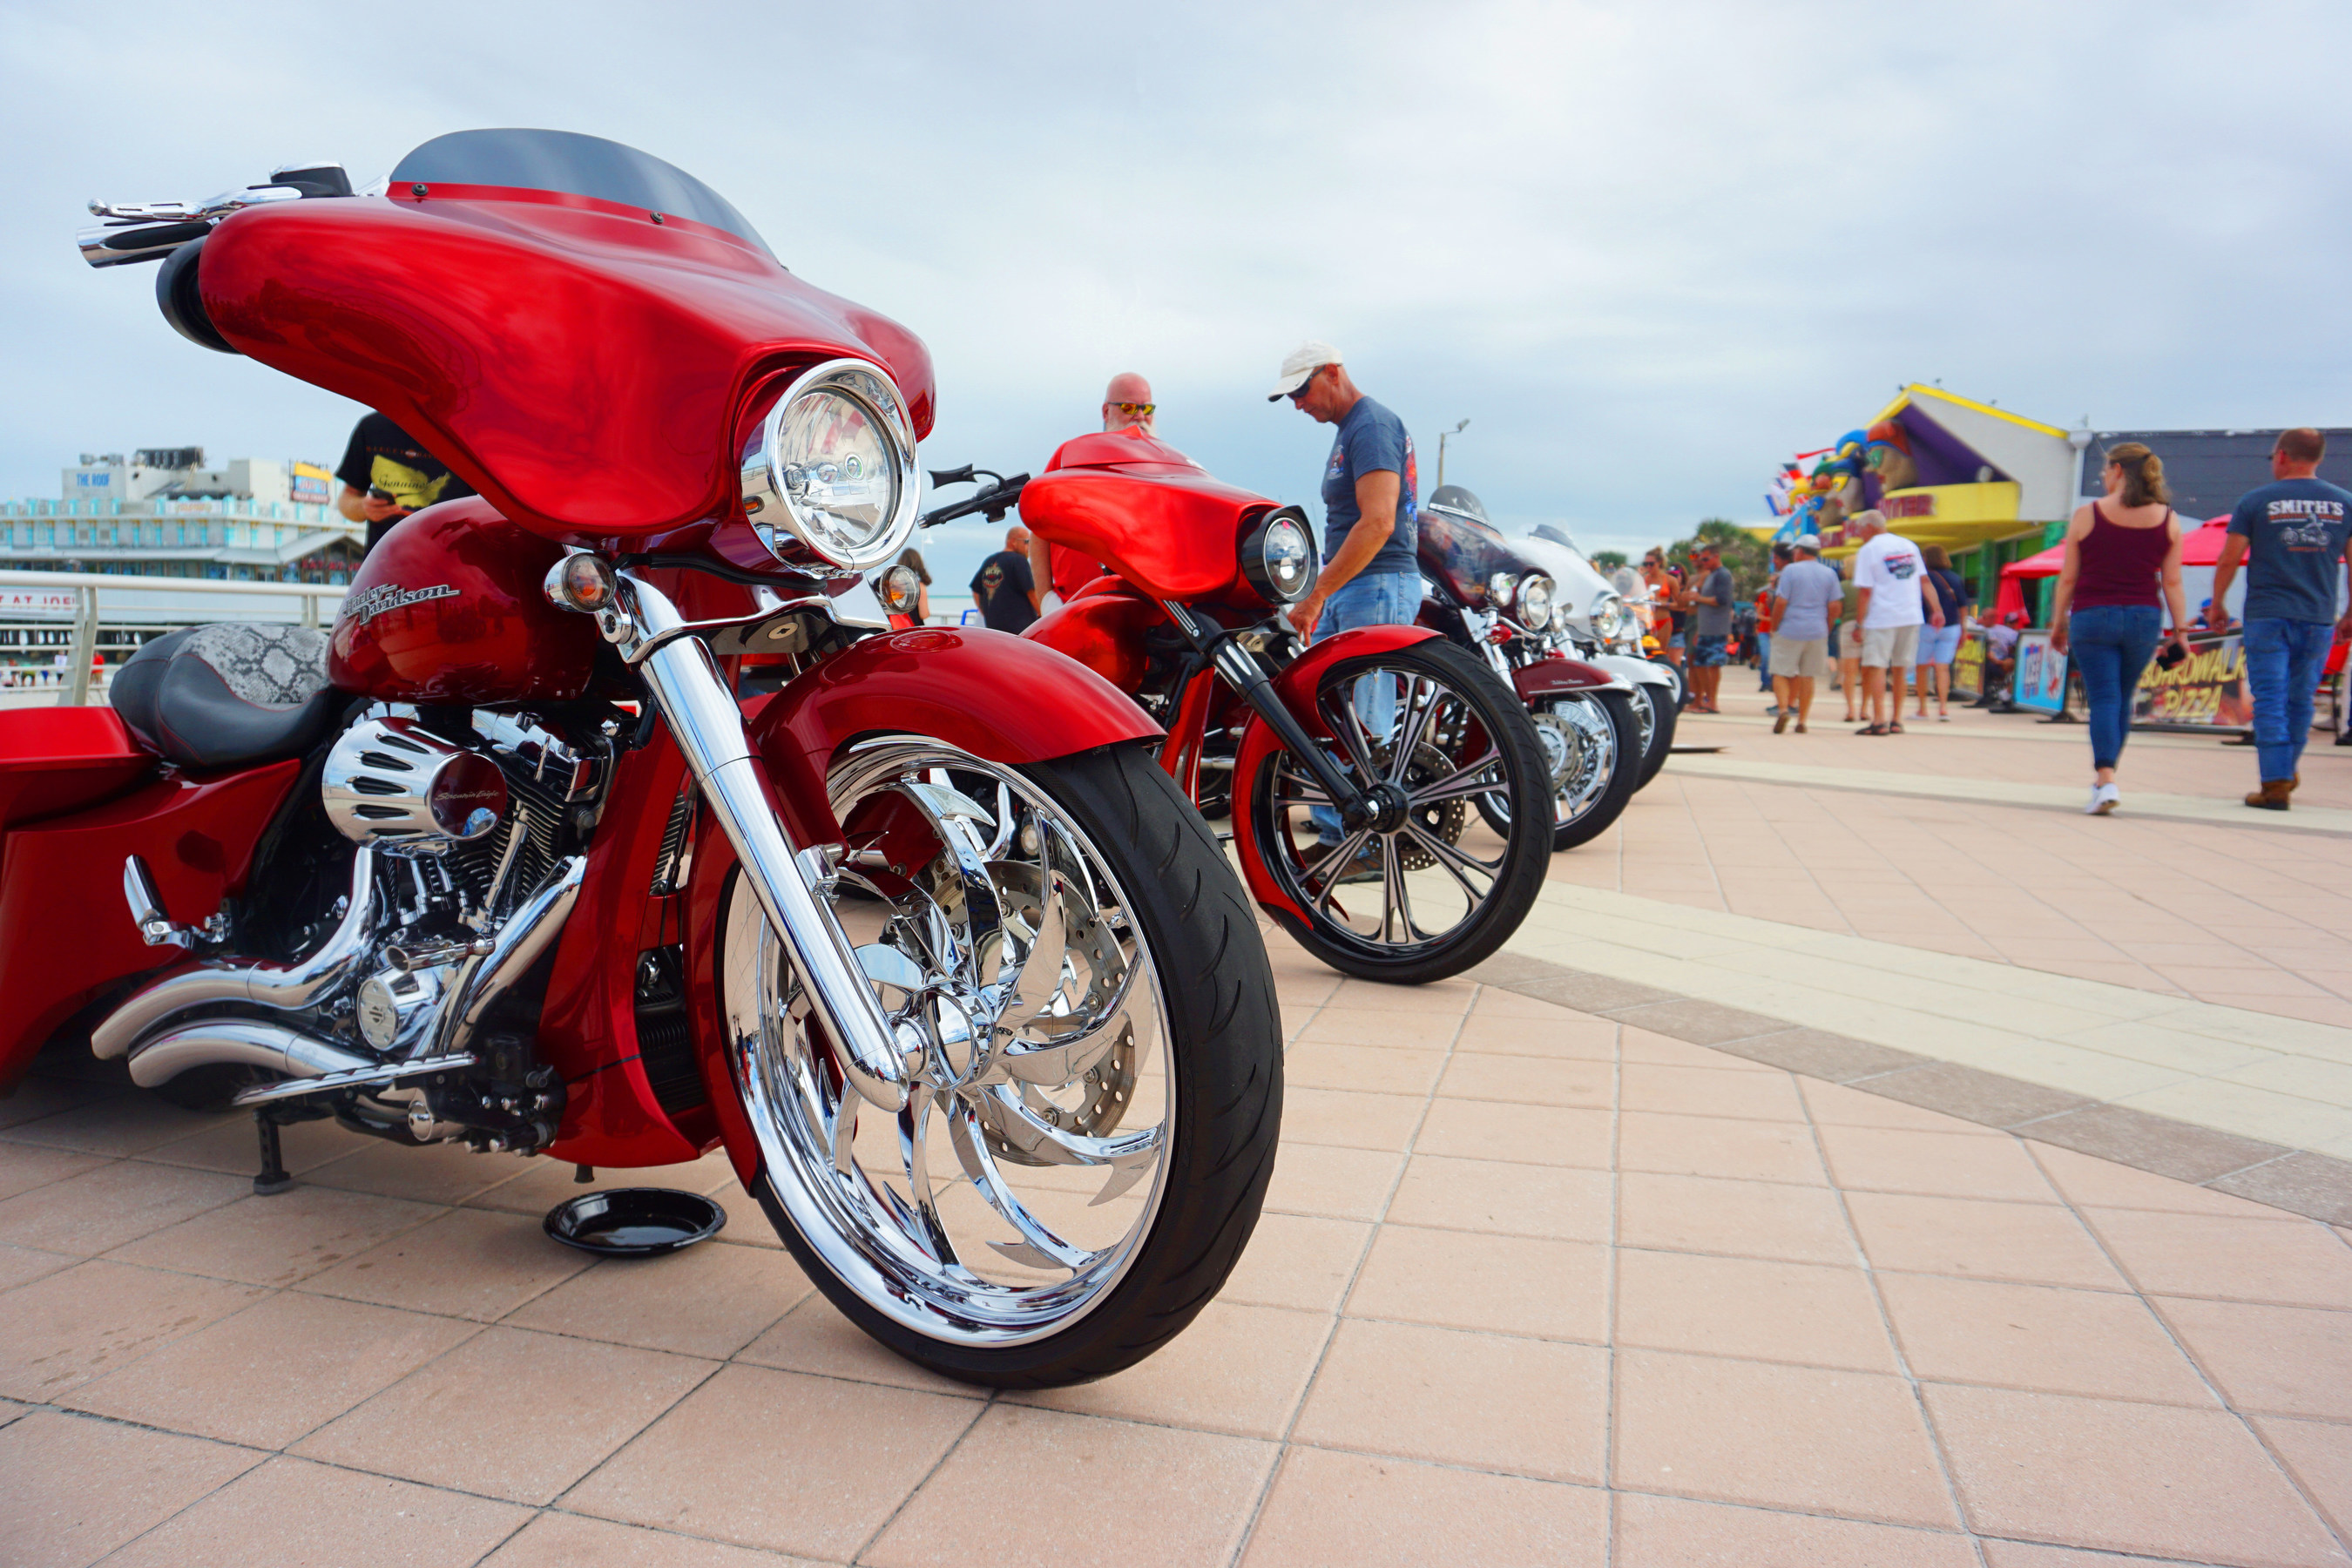 2019 Motorcycle Rallies In Daytona Beach